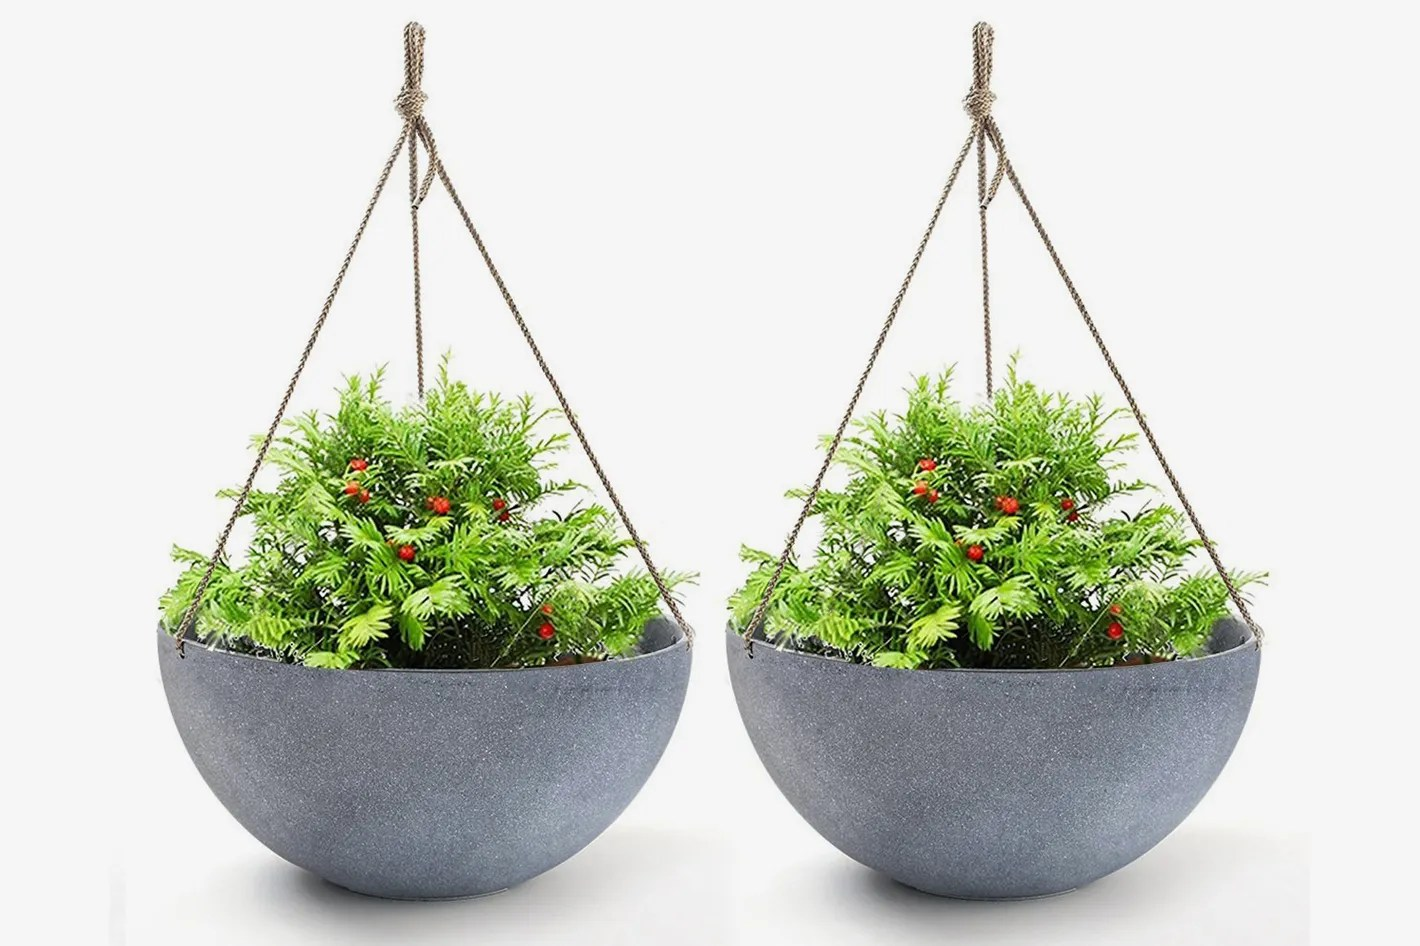 Amazon Garden Pots And Planters The 27 Best Pots And Planters On Amazon 2018